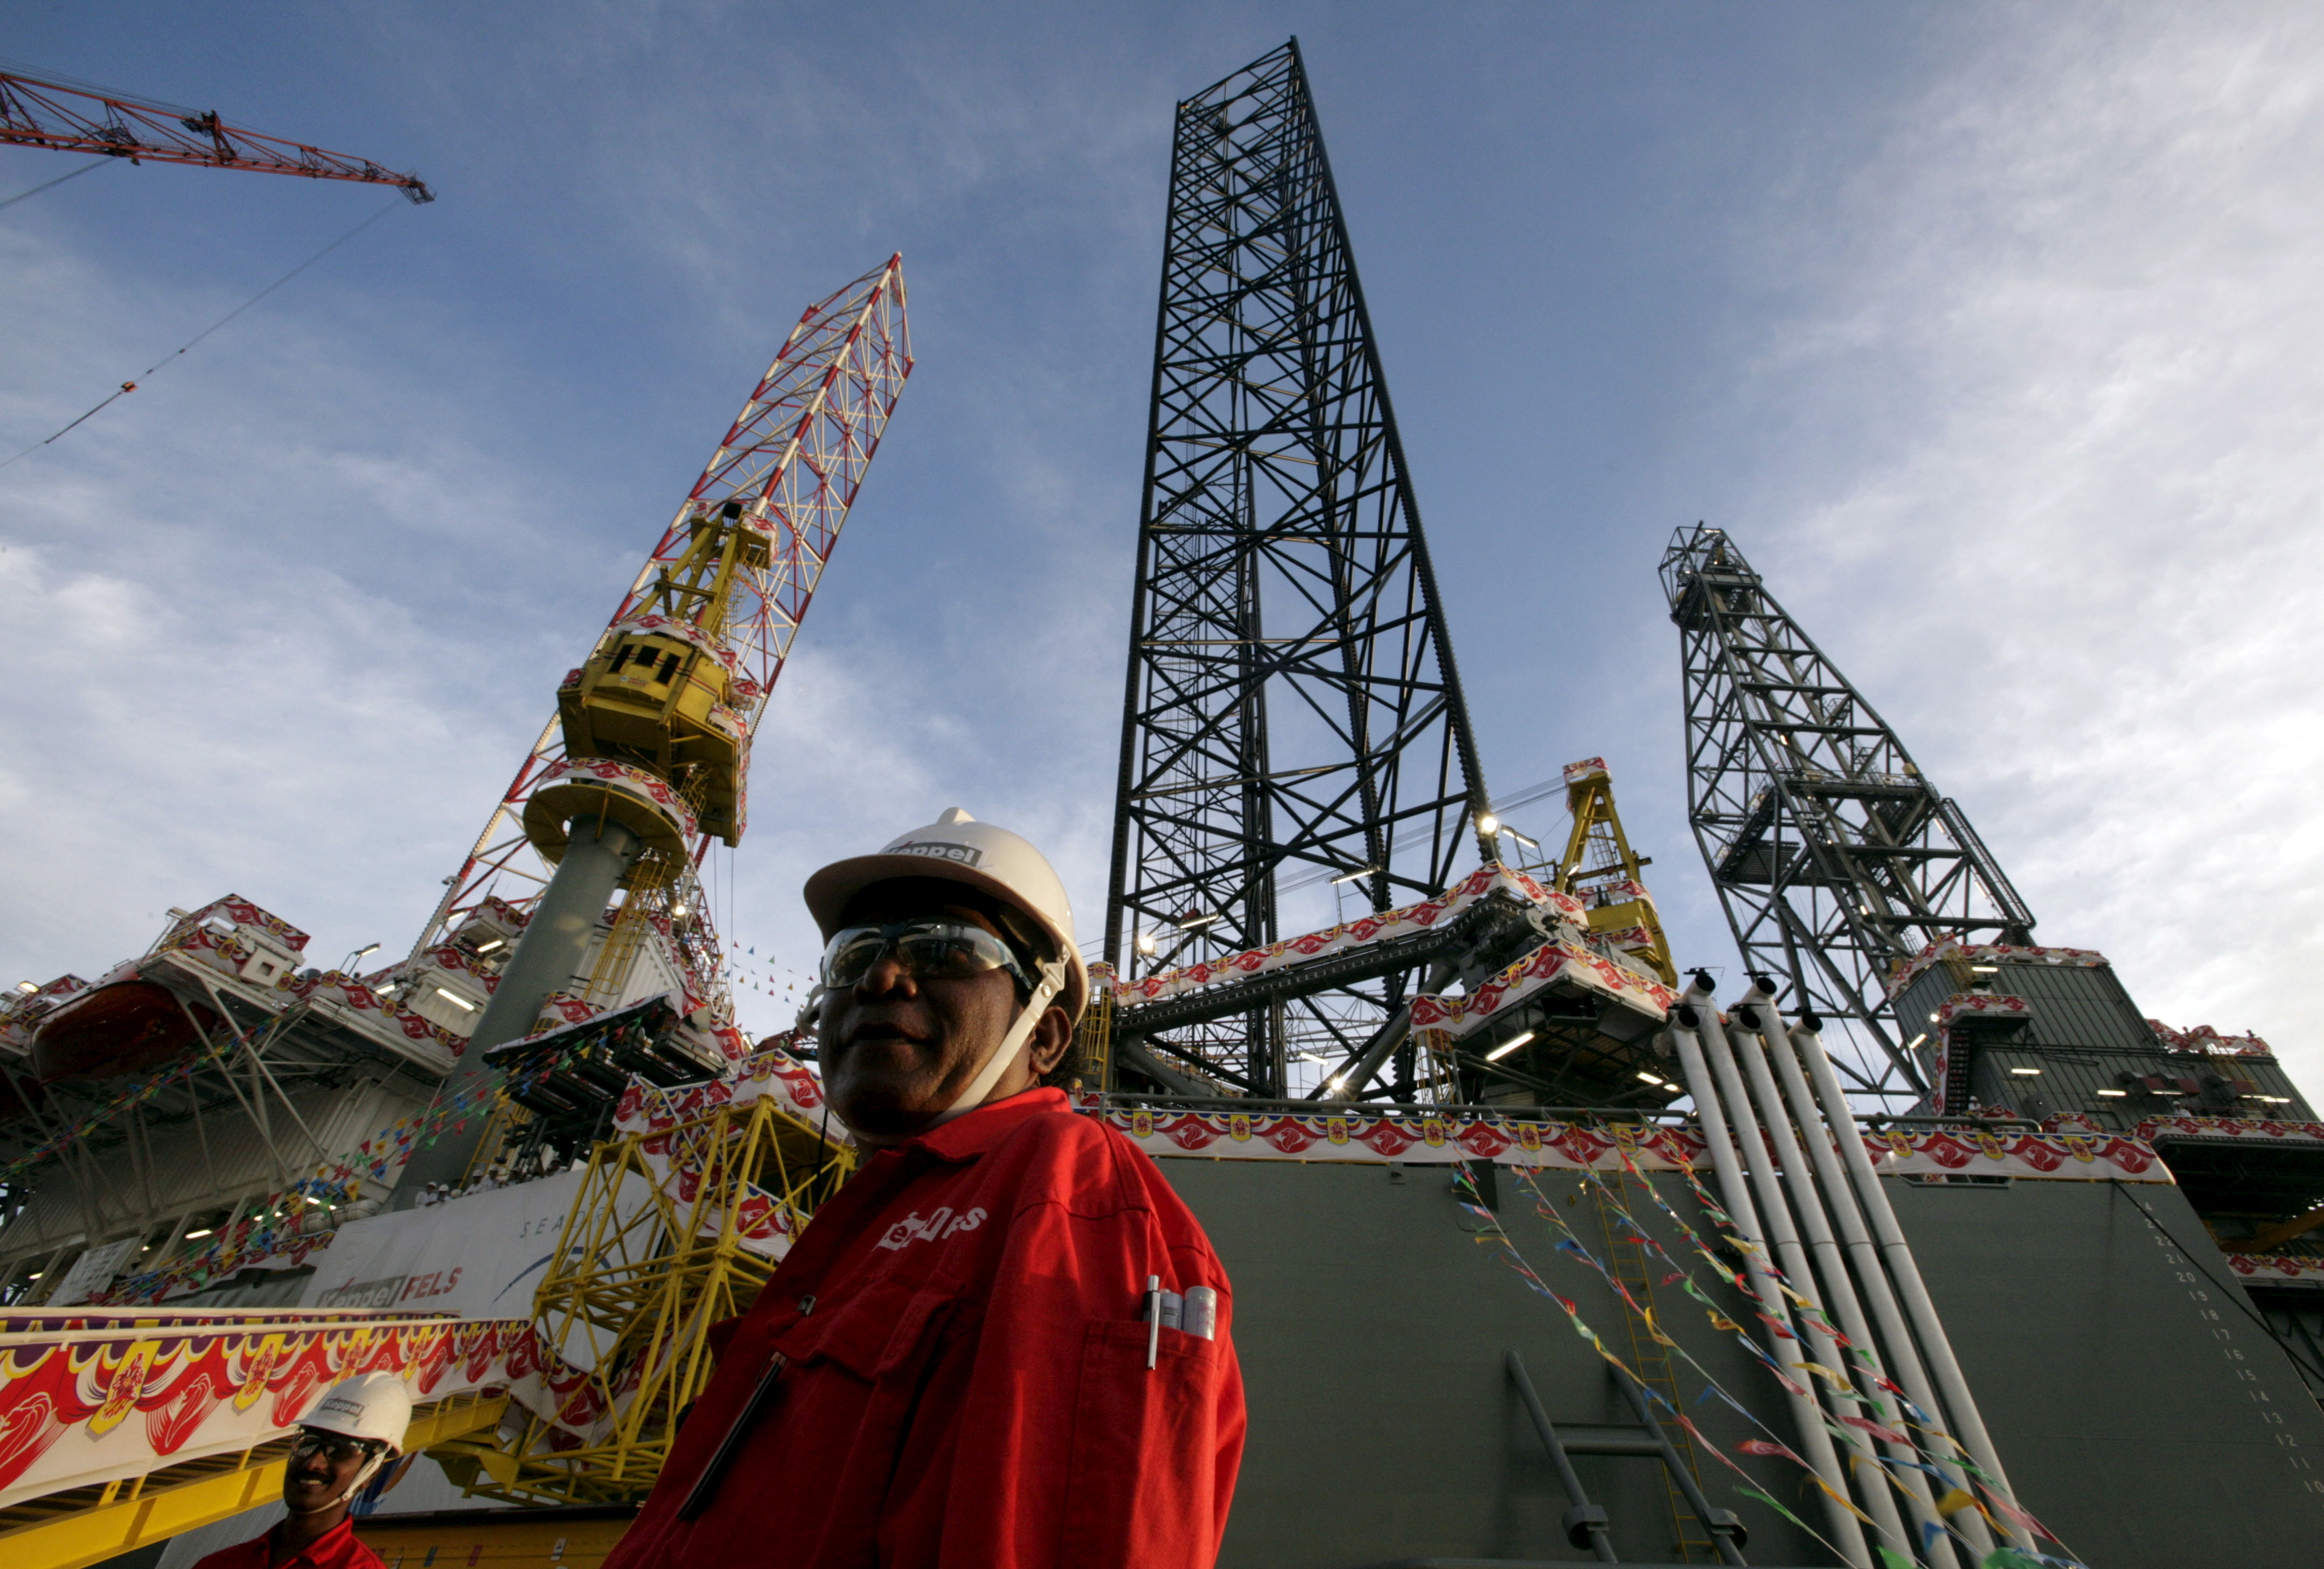 The SEADRILL 3, the first of four oil rigs that Keppel FELS is building for the same customer, is seen in Singapore in this April 21, 2006 file photo.  REUTERS/Luis Enrique Ascui/Files/File Photo